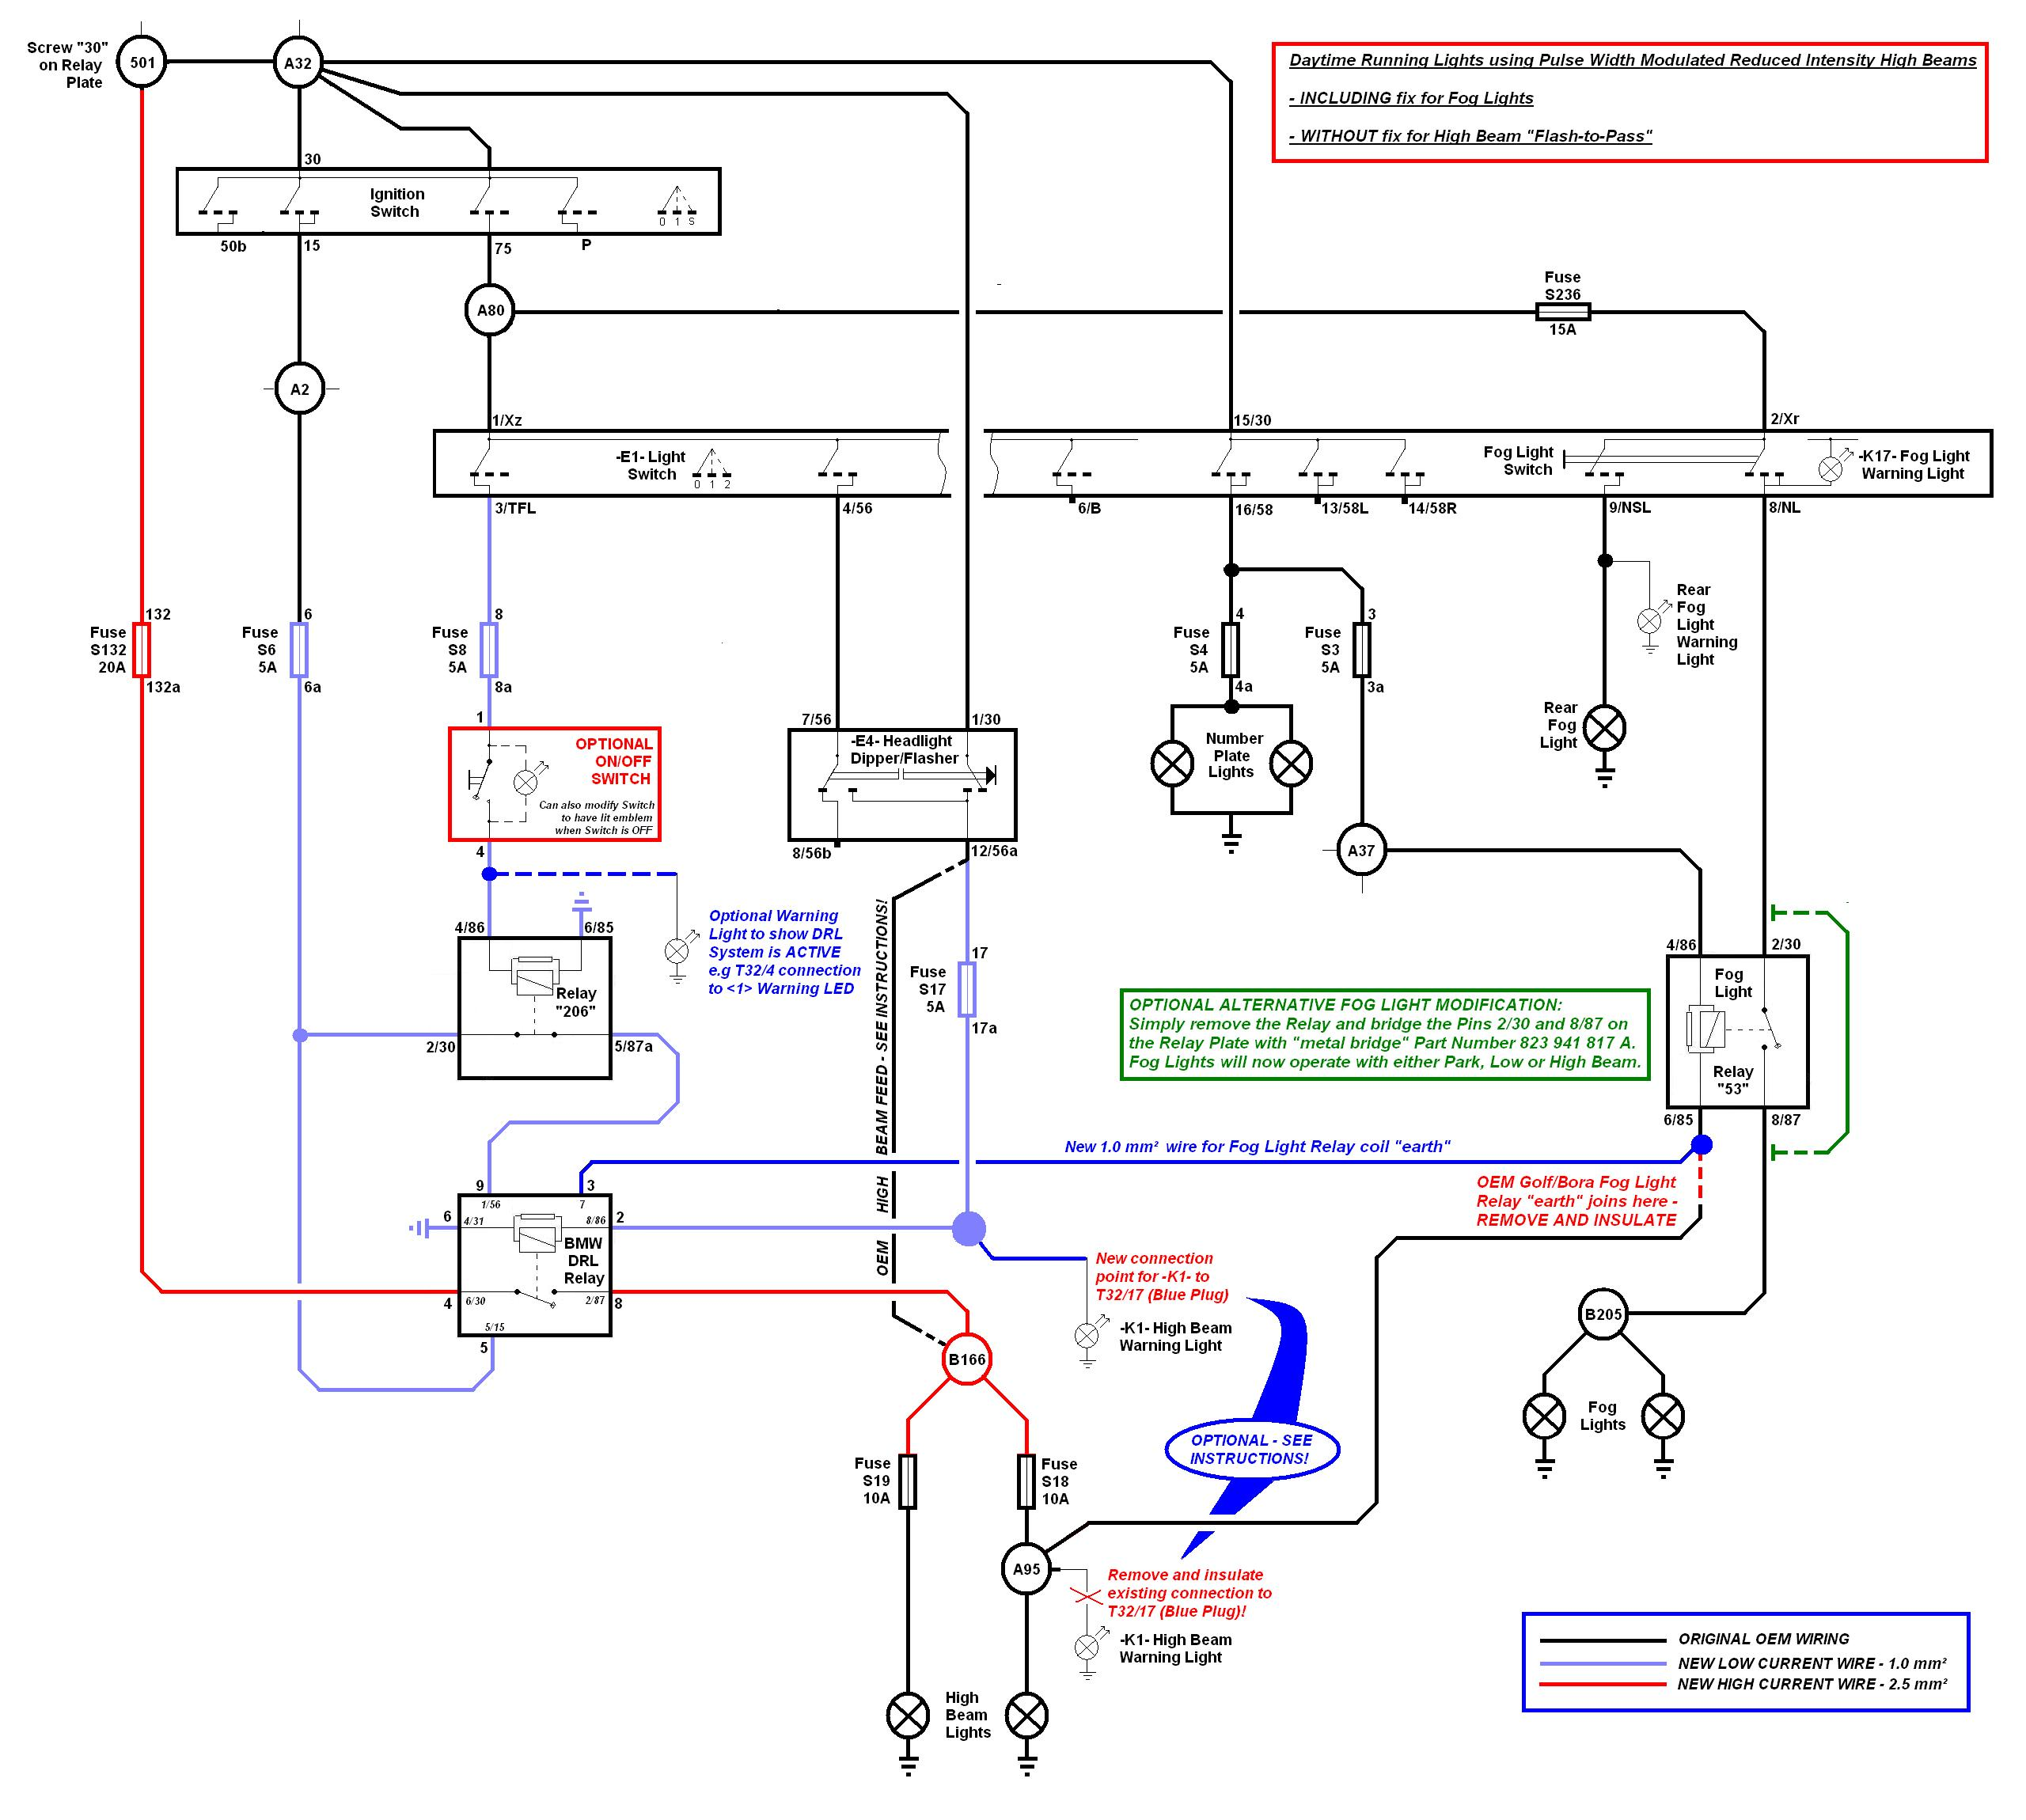 ipf 900xs wiring diagram palm reading and meaning off with high beam fog light best librarygraeme u0027s webspace